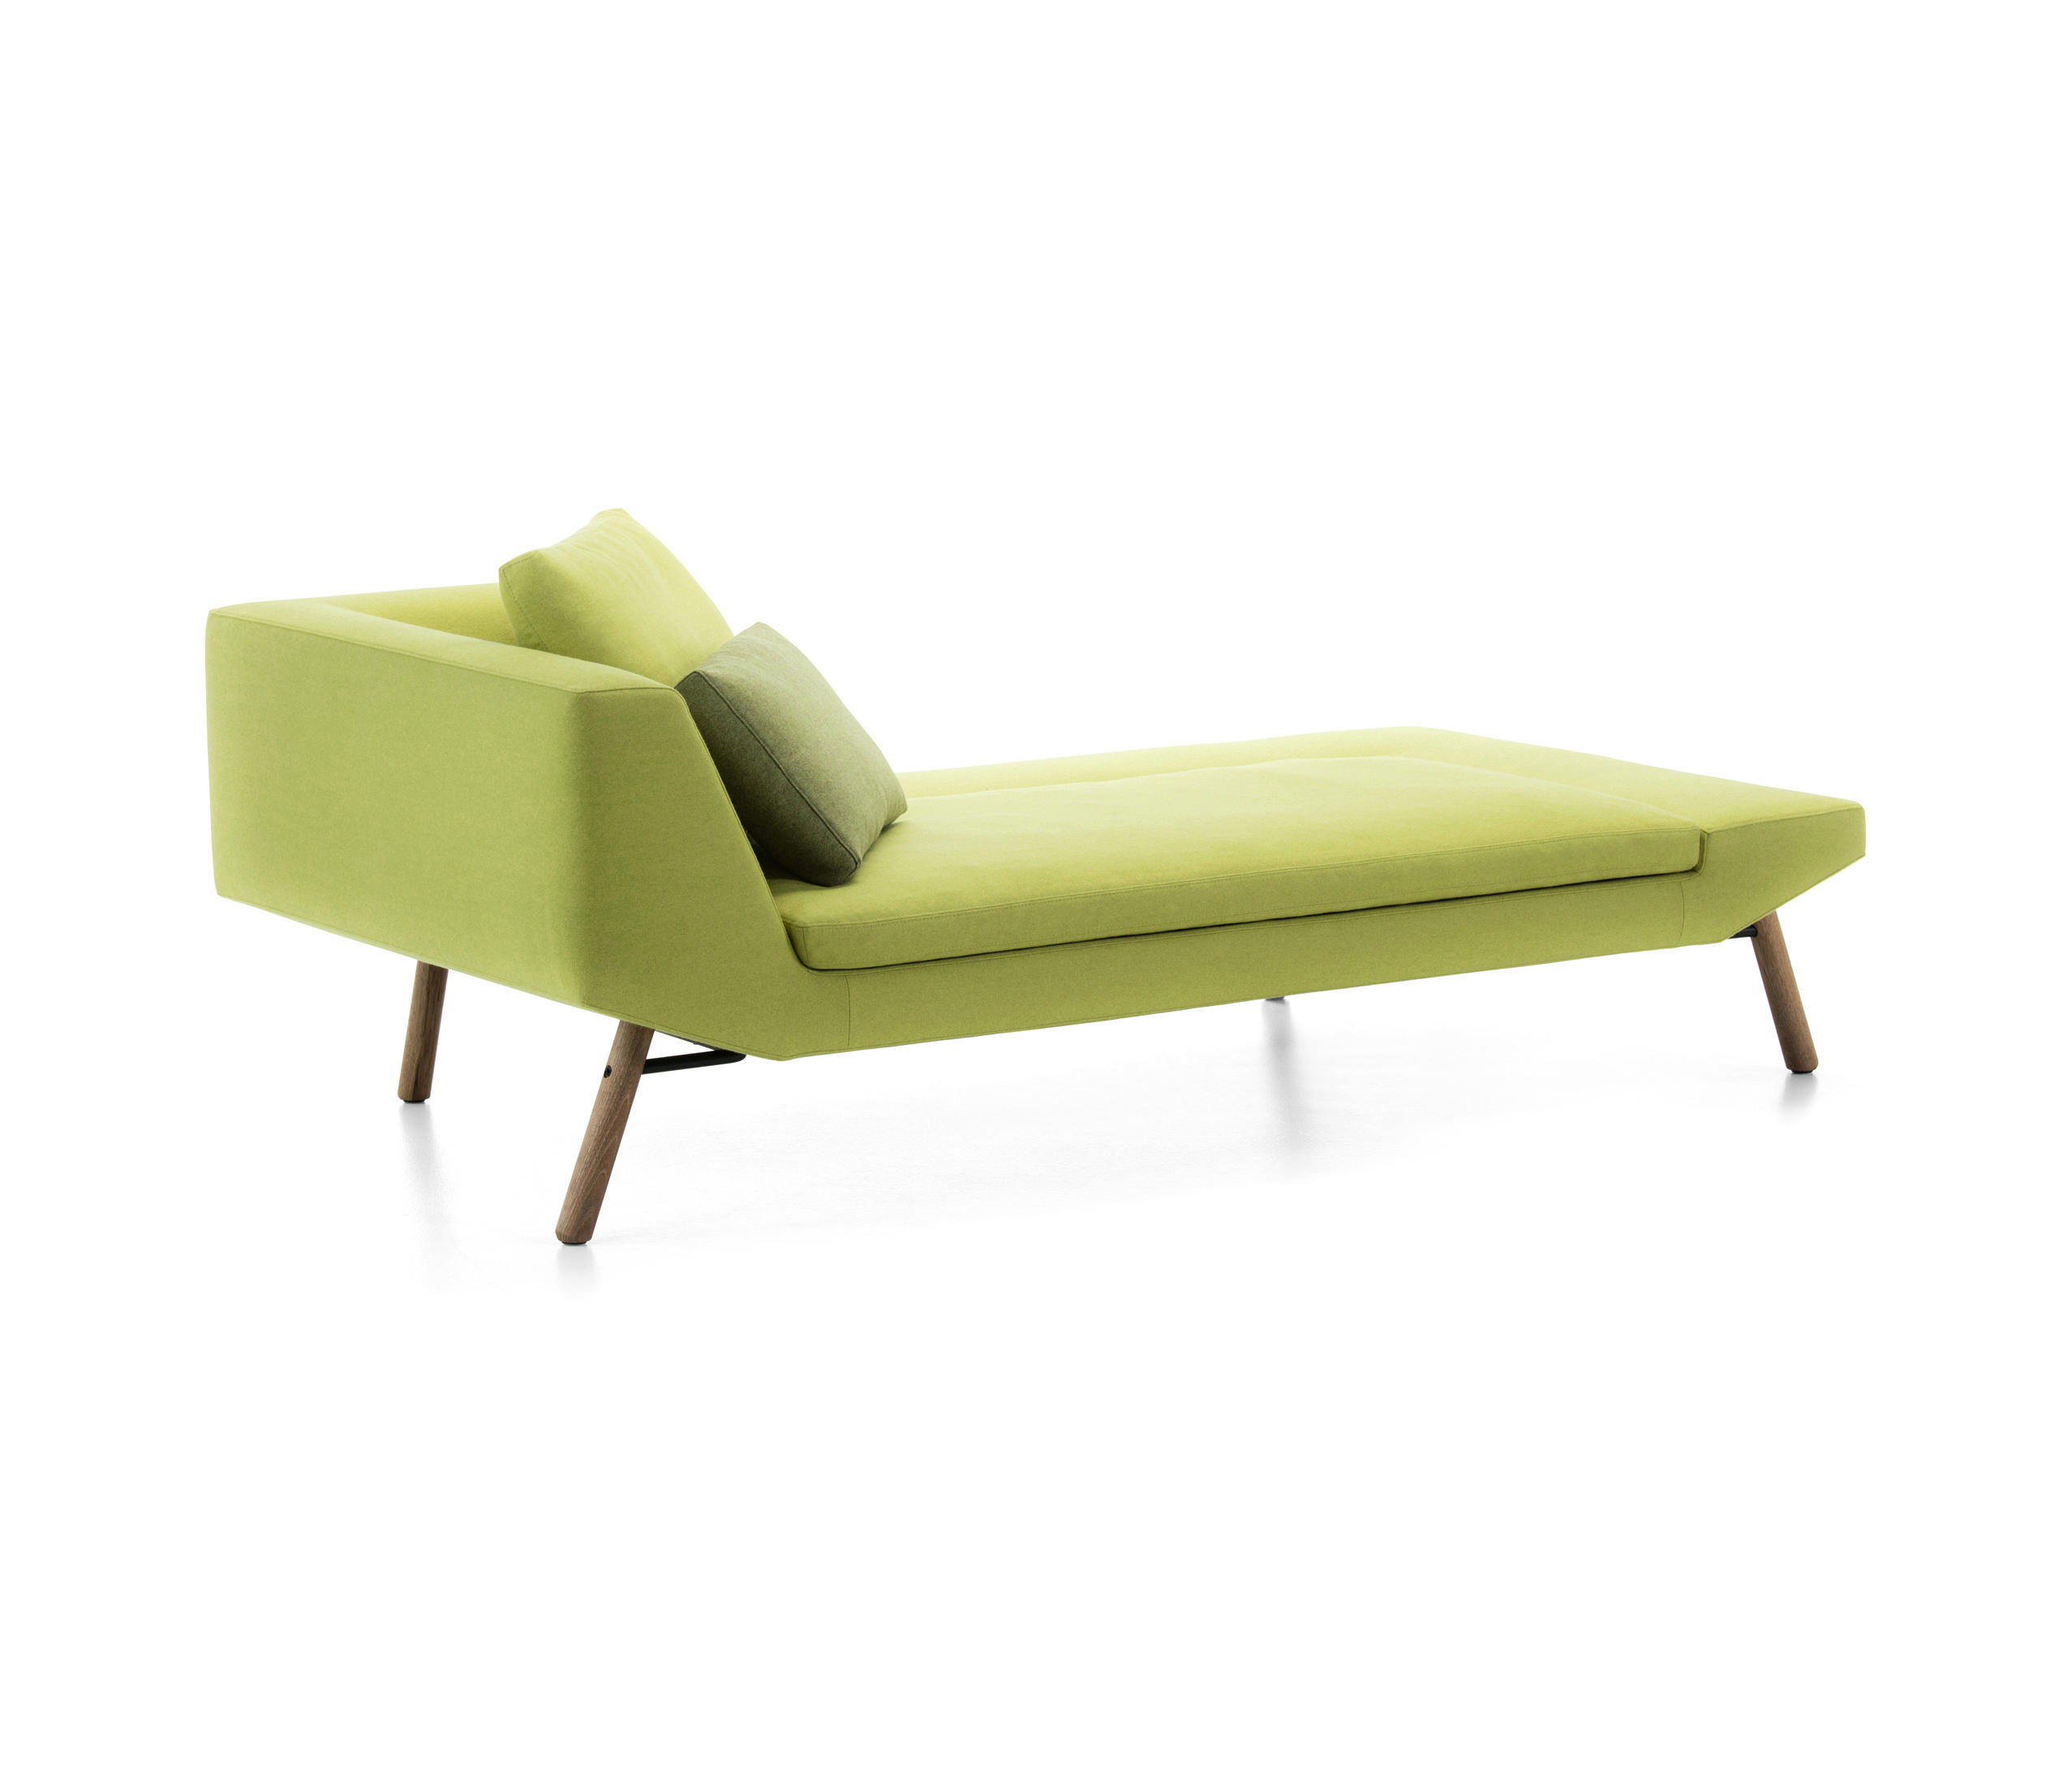 Combine chaise longue chaise longues from prostoria for Chaise longue 2 personnes